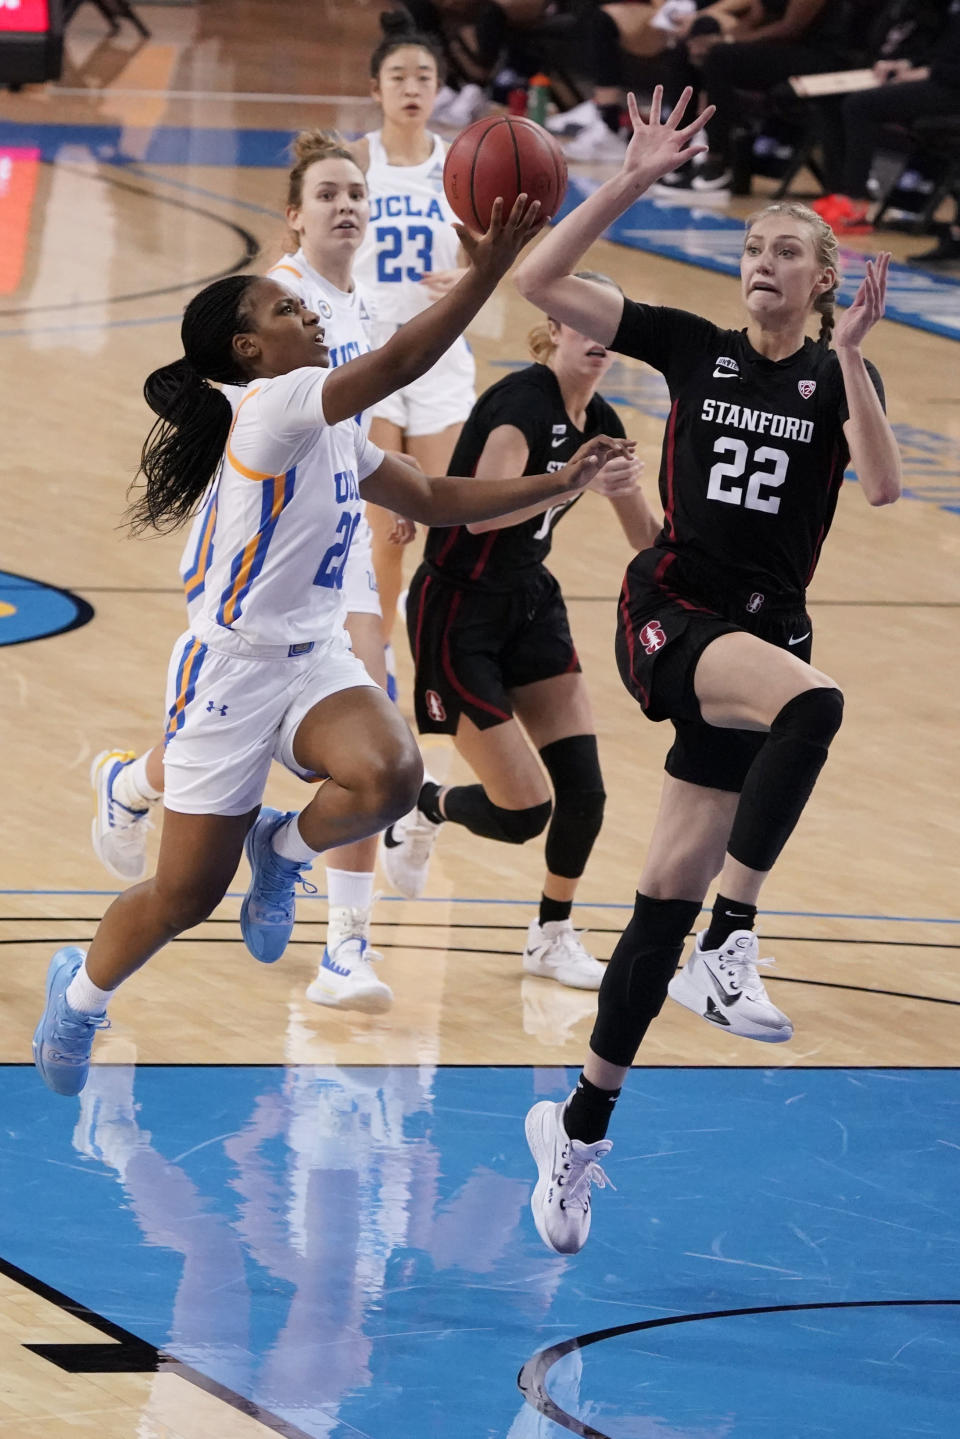 UCLA guard Charisma Osborne, left, drives to the basket as Stanford forward Cameron Brink (22) defends during the second half of an NCAA college basketball game Monday, Dec. 21, 2020, in Los Angeles. (AP Photo/Marcio Jose Sanchez)